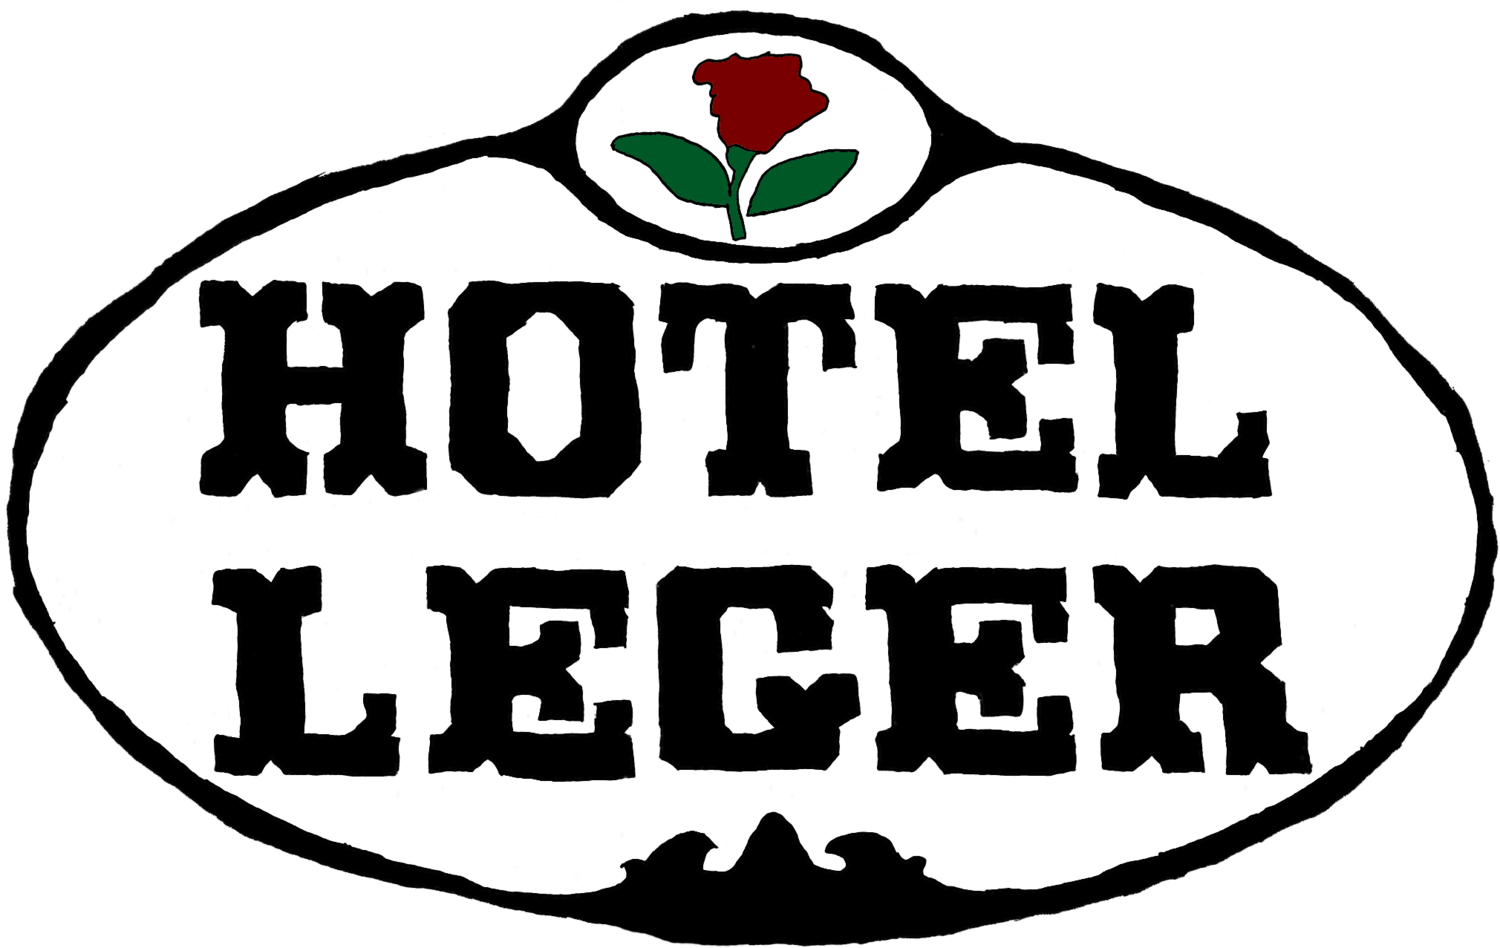 Hotel Léger Restaurant and Saloon